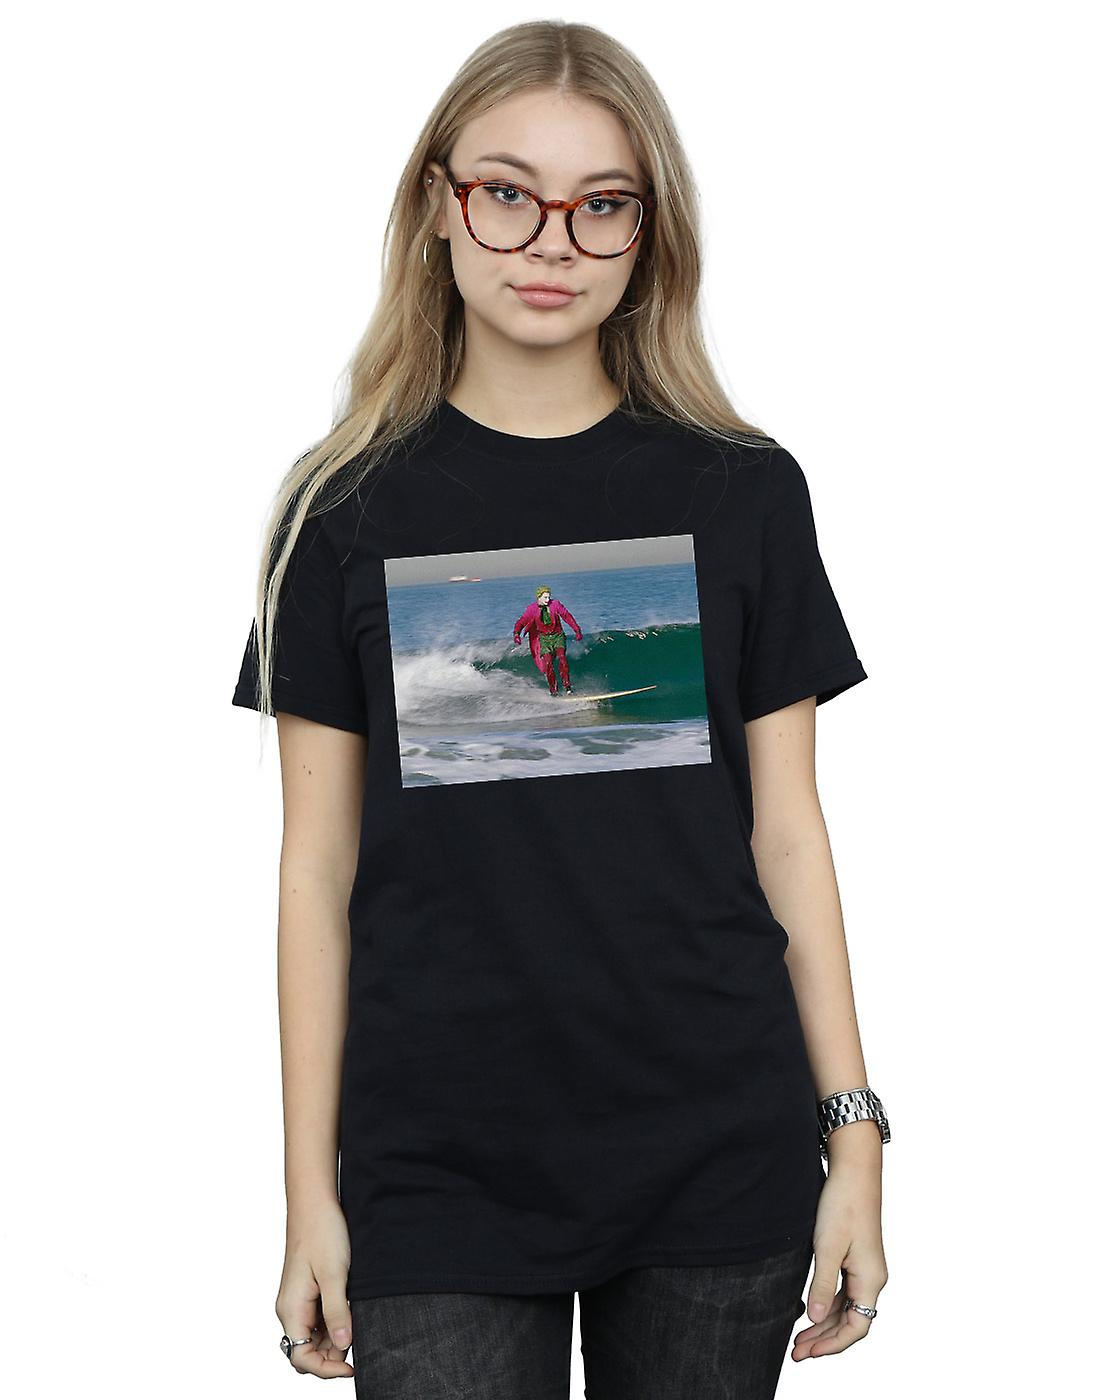 DC Comics Women's Batman TV Series Joker Surfing Boyfriend Fit T-Shirt